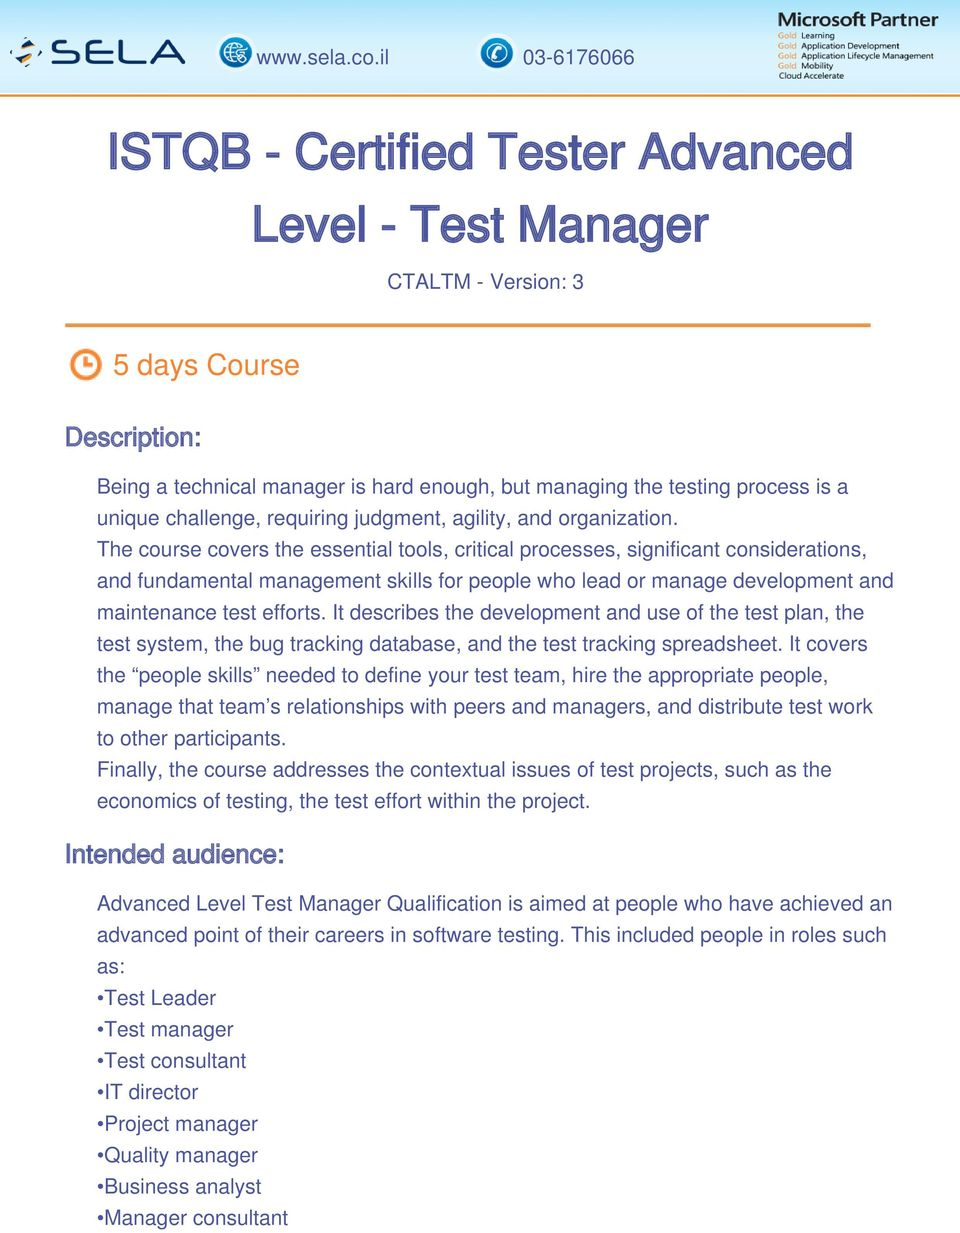 The course covers the essential tools, critical processes, significant considerations, and fundamental management skills for people who lead or manage development and maintenance test efforts.